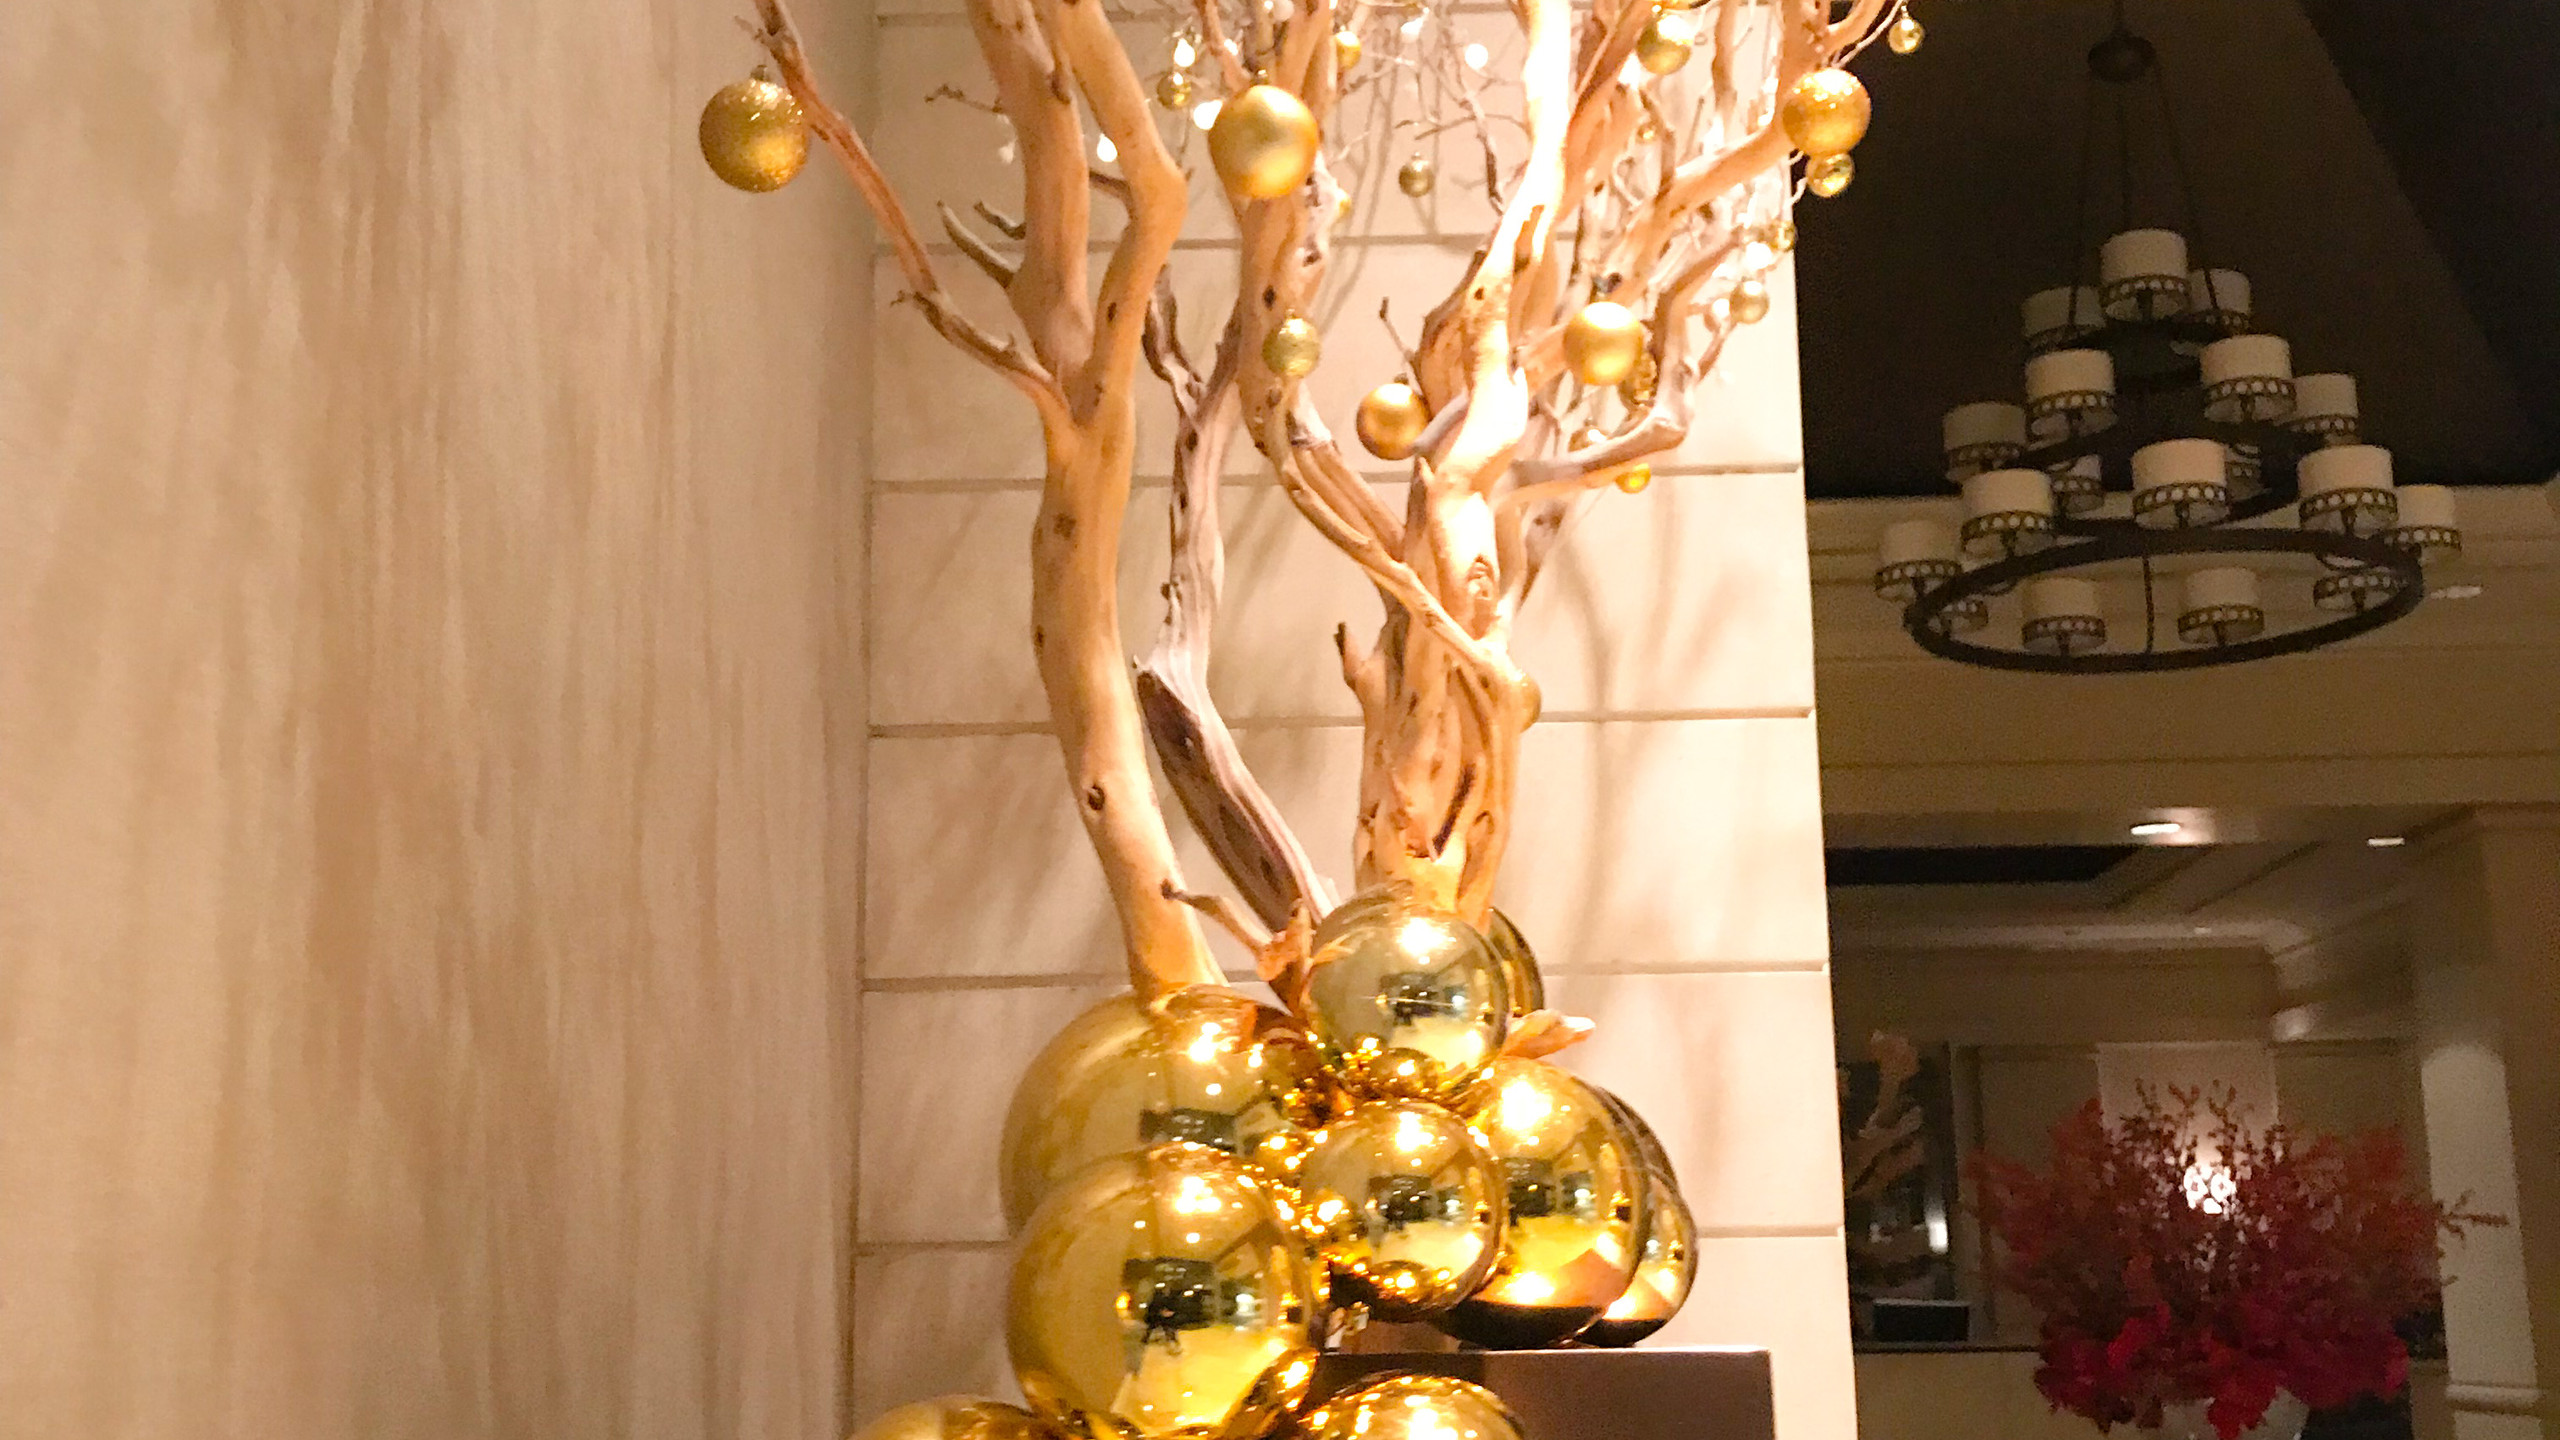 Details of 12 ft' Modern Christmas tree display designed by Franzie's Flower Design for the Fairmont Dallas hotel, Pyramid Restaurant & Bar lobby.